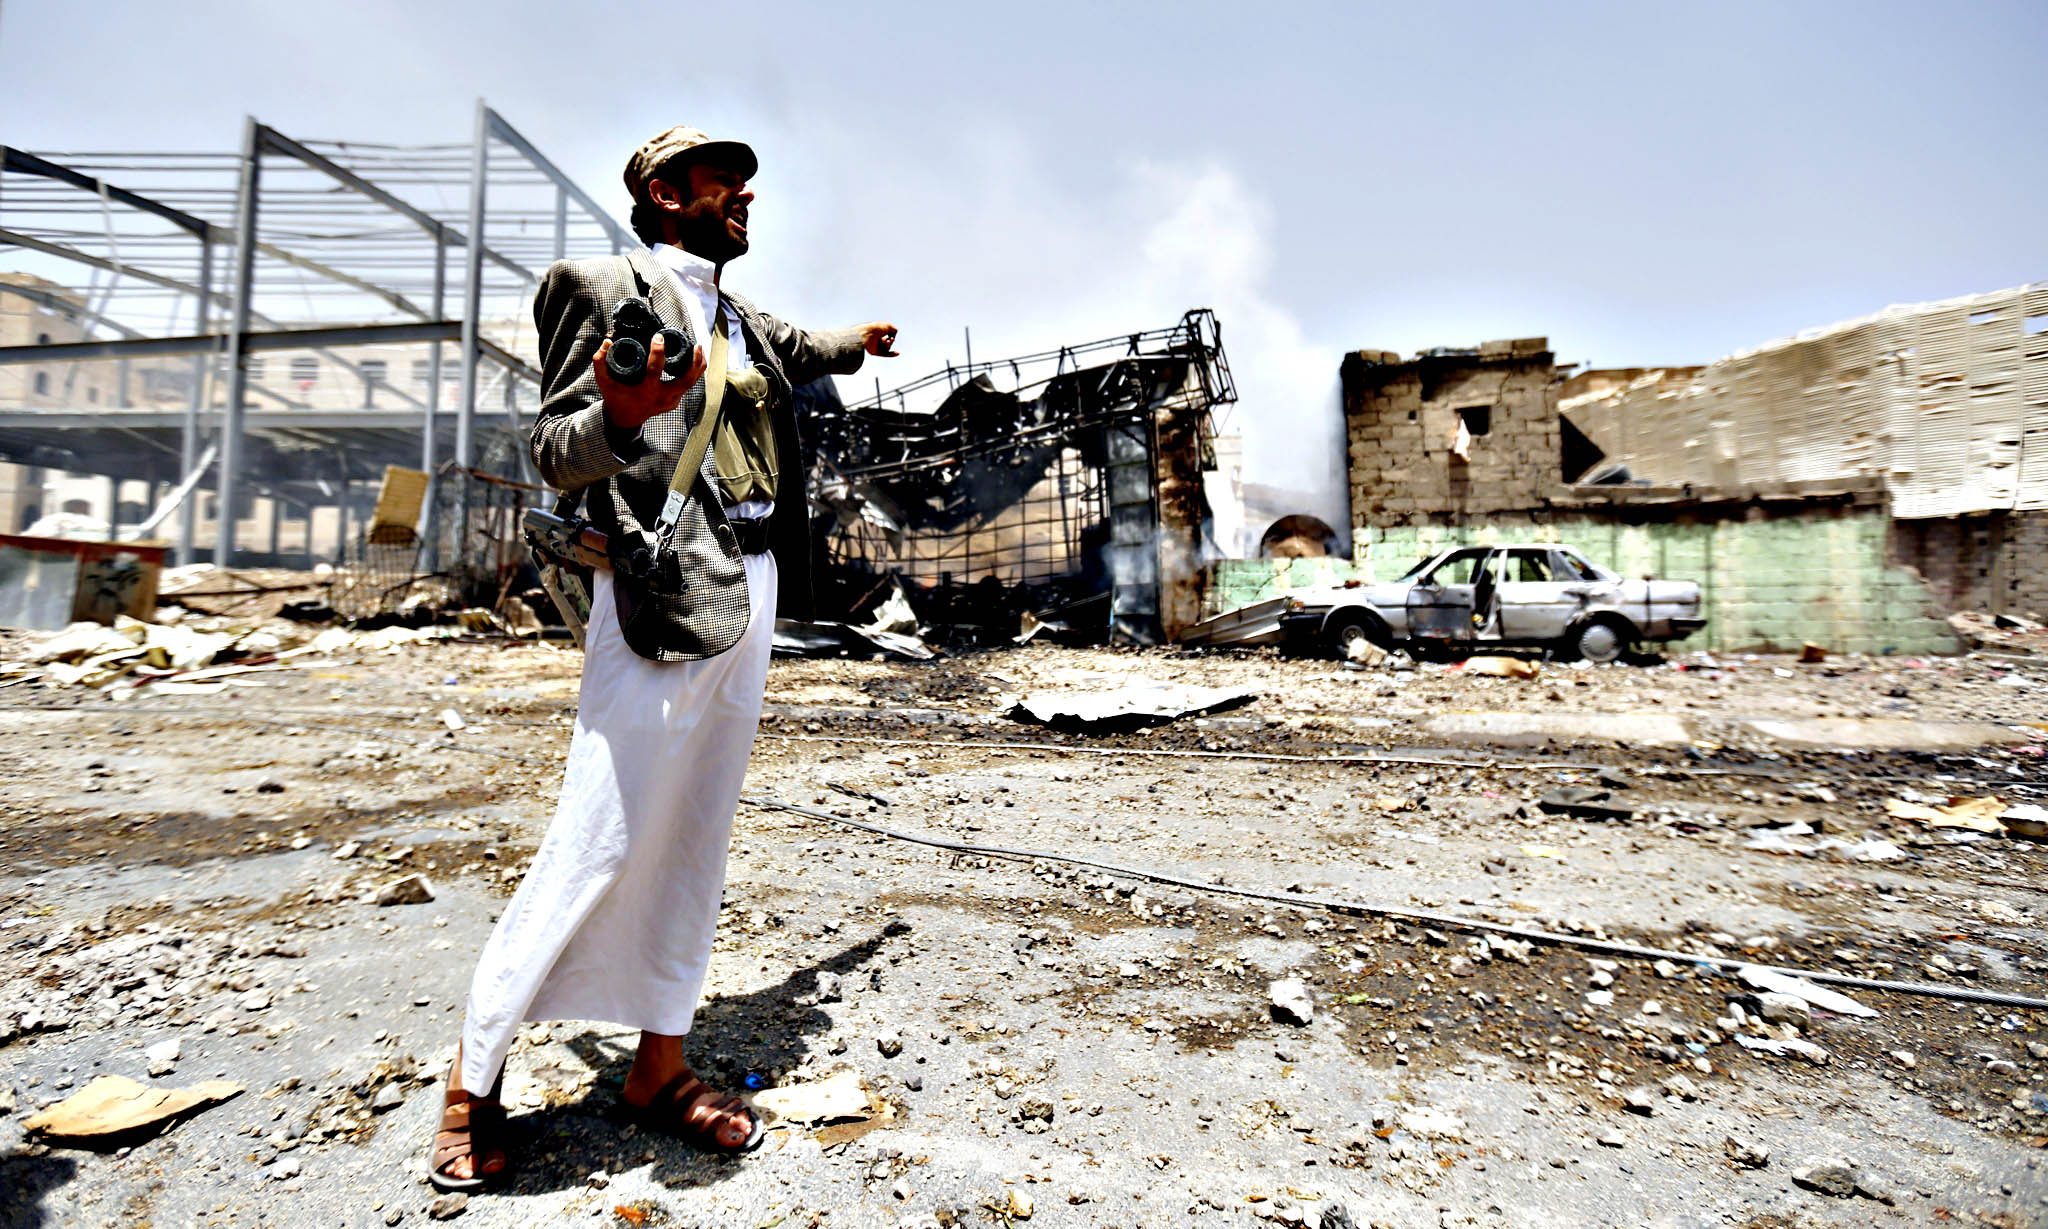 An armed member of the Houthi militia calls for help near a house allegedly destroyed in an airstrike carried out by the Saudi-led coalition targeting two military bases controlled by Houthi fighters in Sana a, Yemen, 20 April 2015. A huge explosion rocked Sana'a as airstrikes carried out by the Saudi-led coalition hit what witnesses said was a base used by a missile brigade of the Yemeni army, but is now controlled by the Houthis, the explosions damaging nearby civilian housing